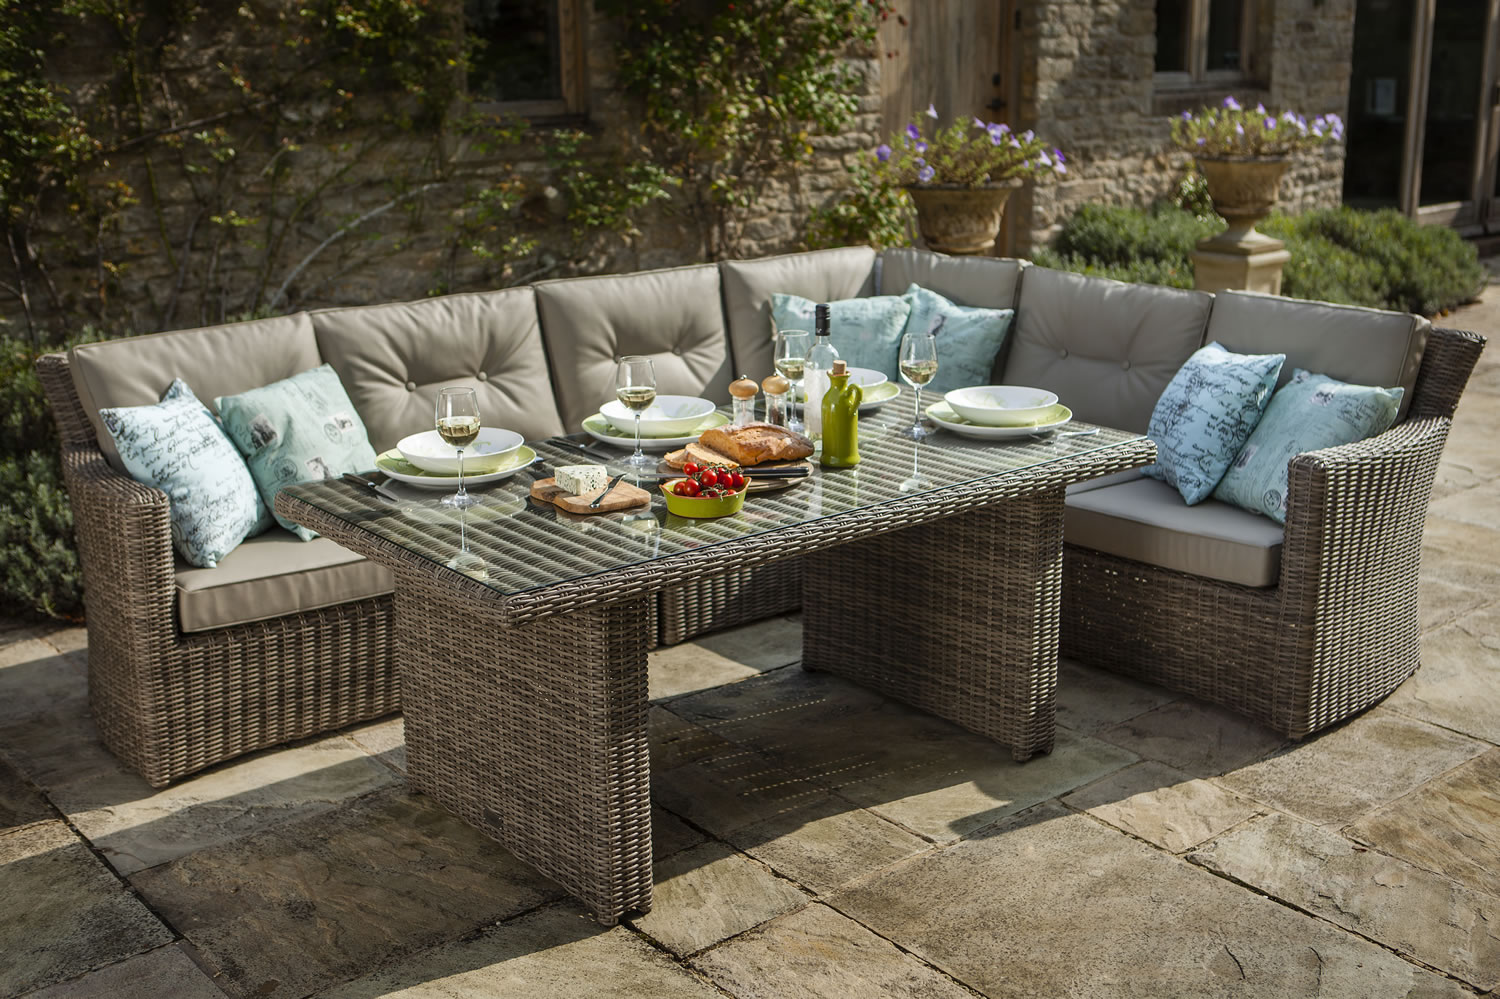 Java casual dining rattan furniture set by hartman £